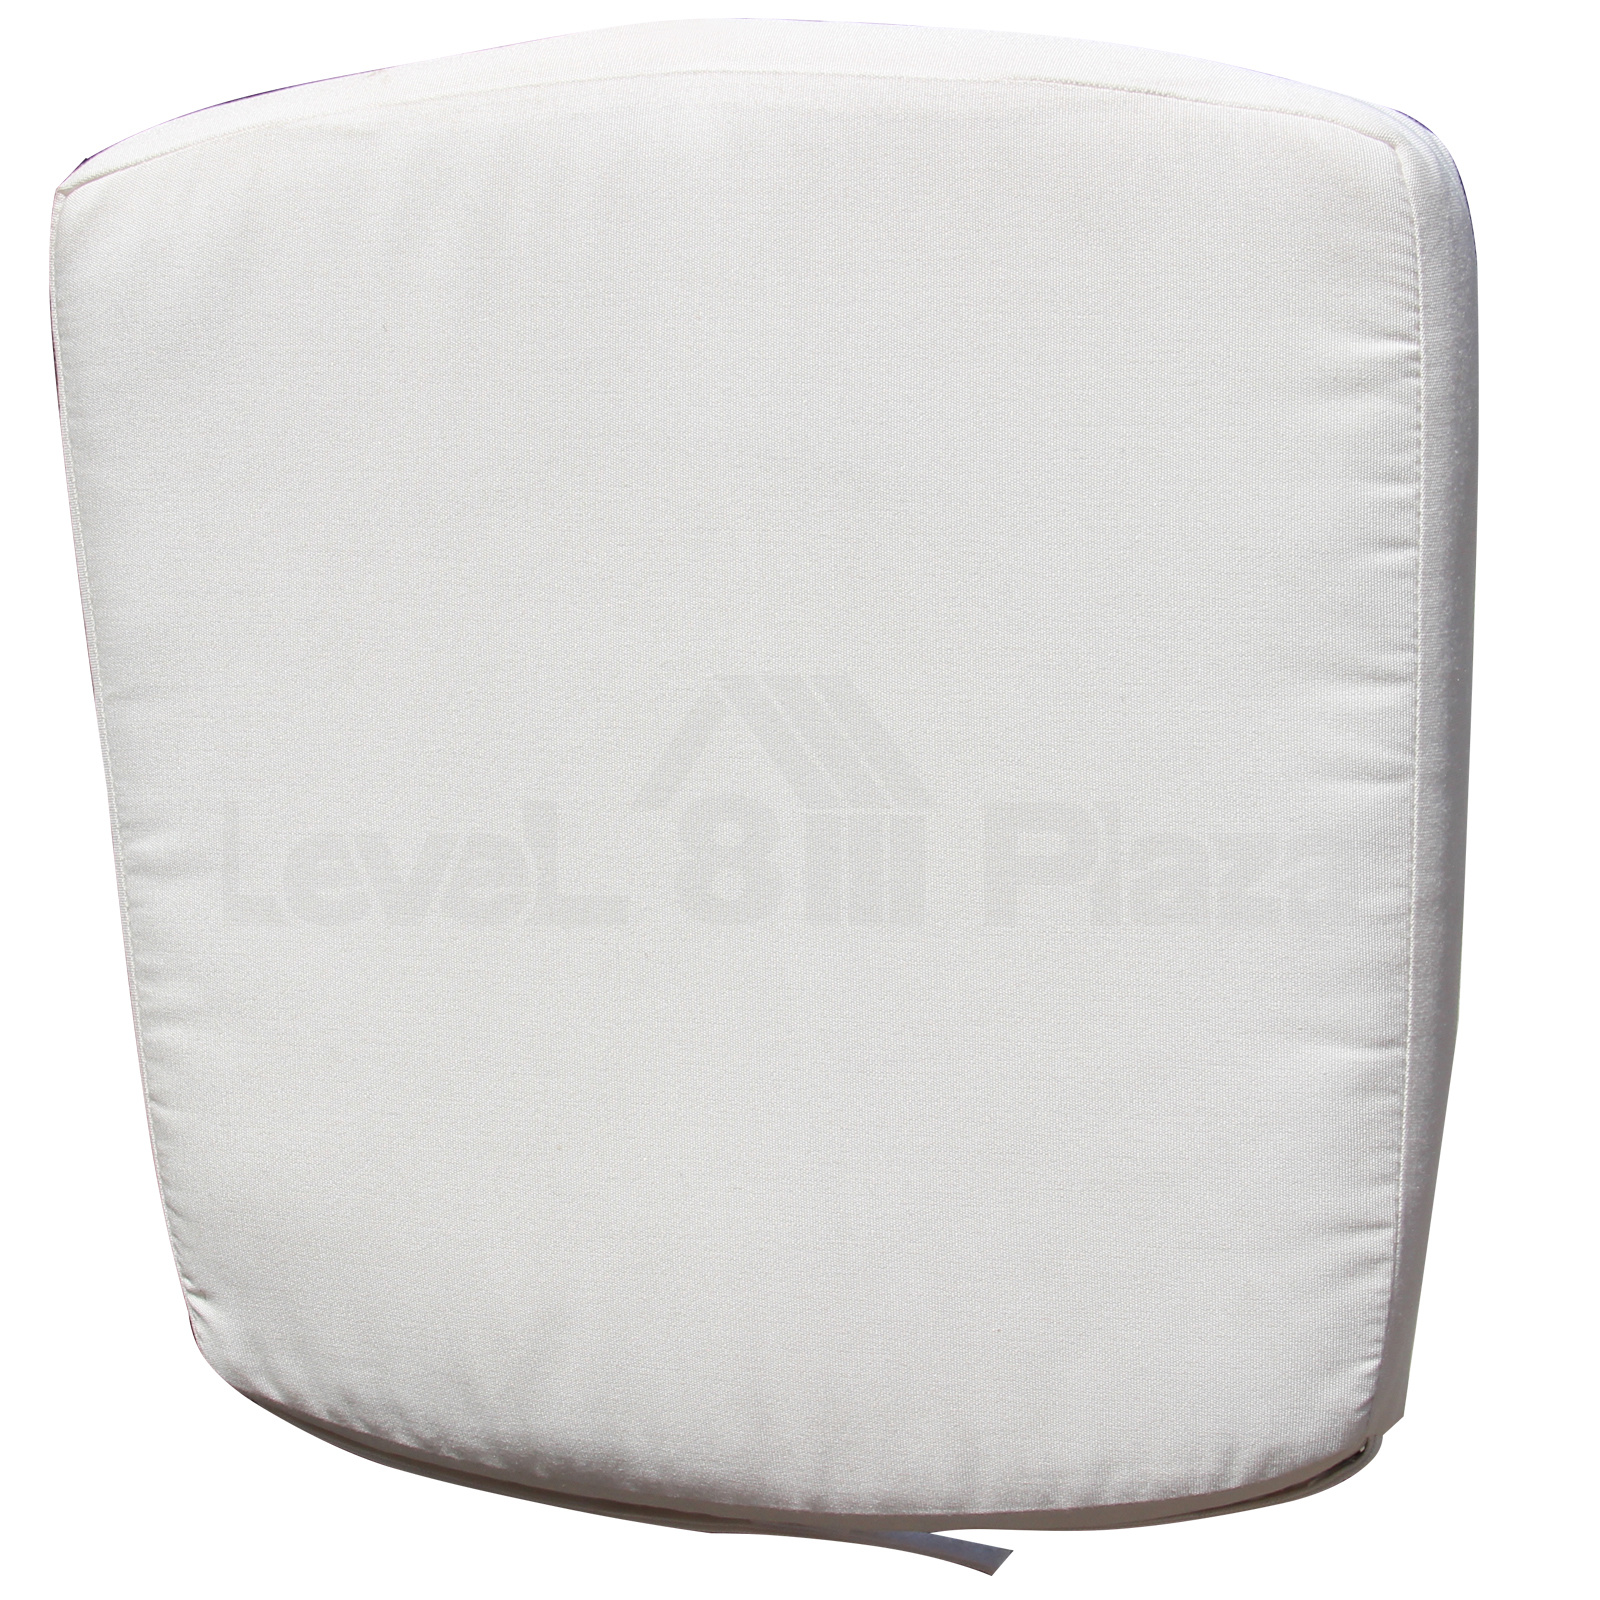 New sunbrella outdoor chair cushion tie on patio seat pad for Chair cushion covers with ties